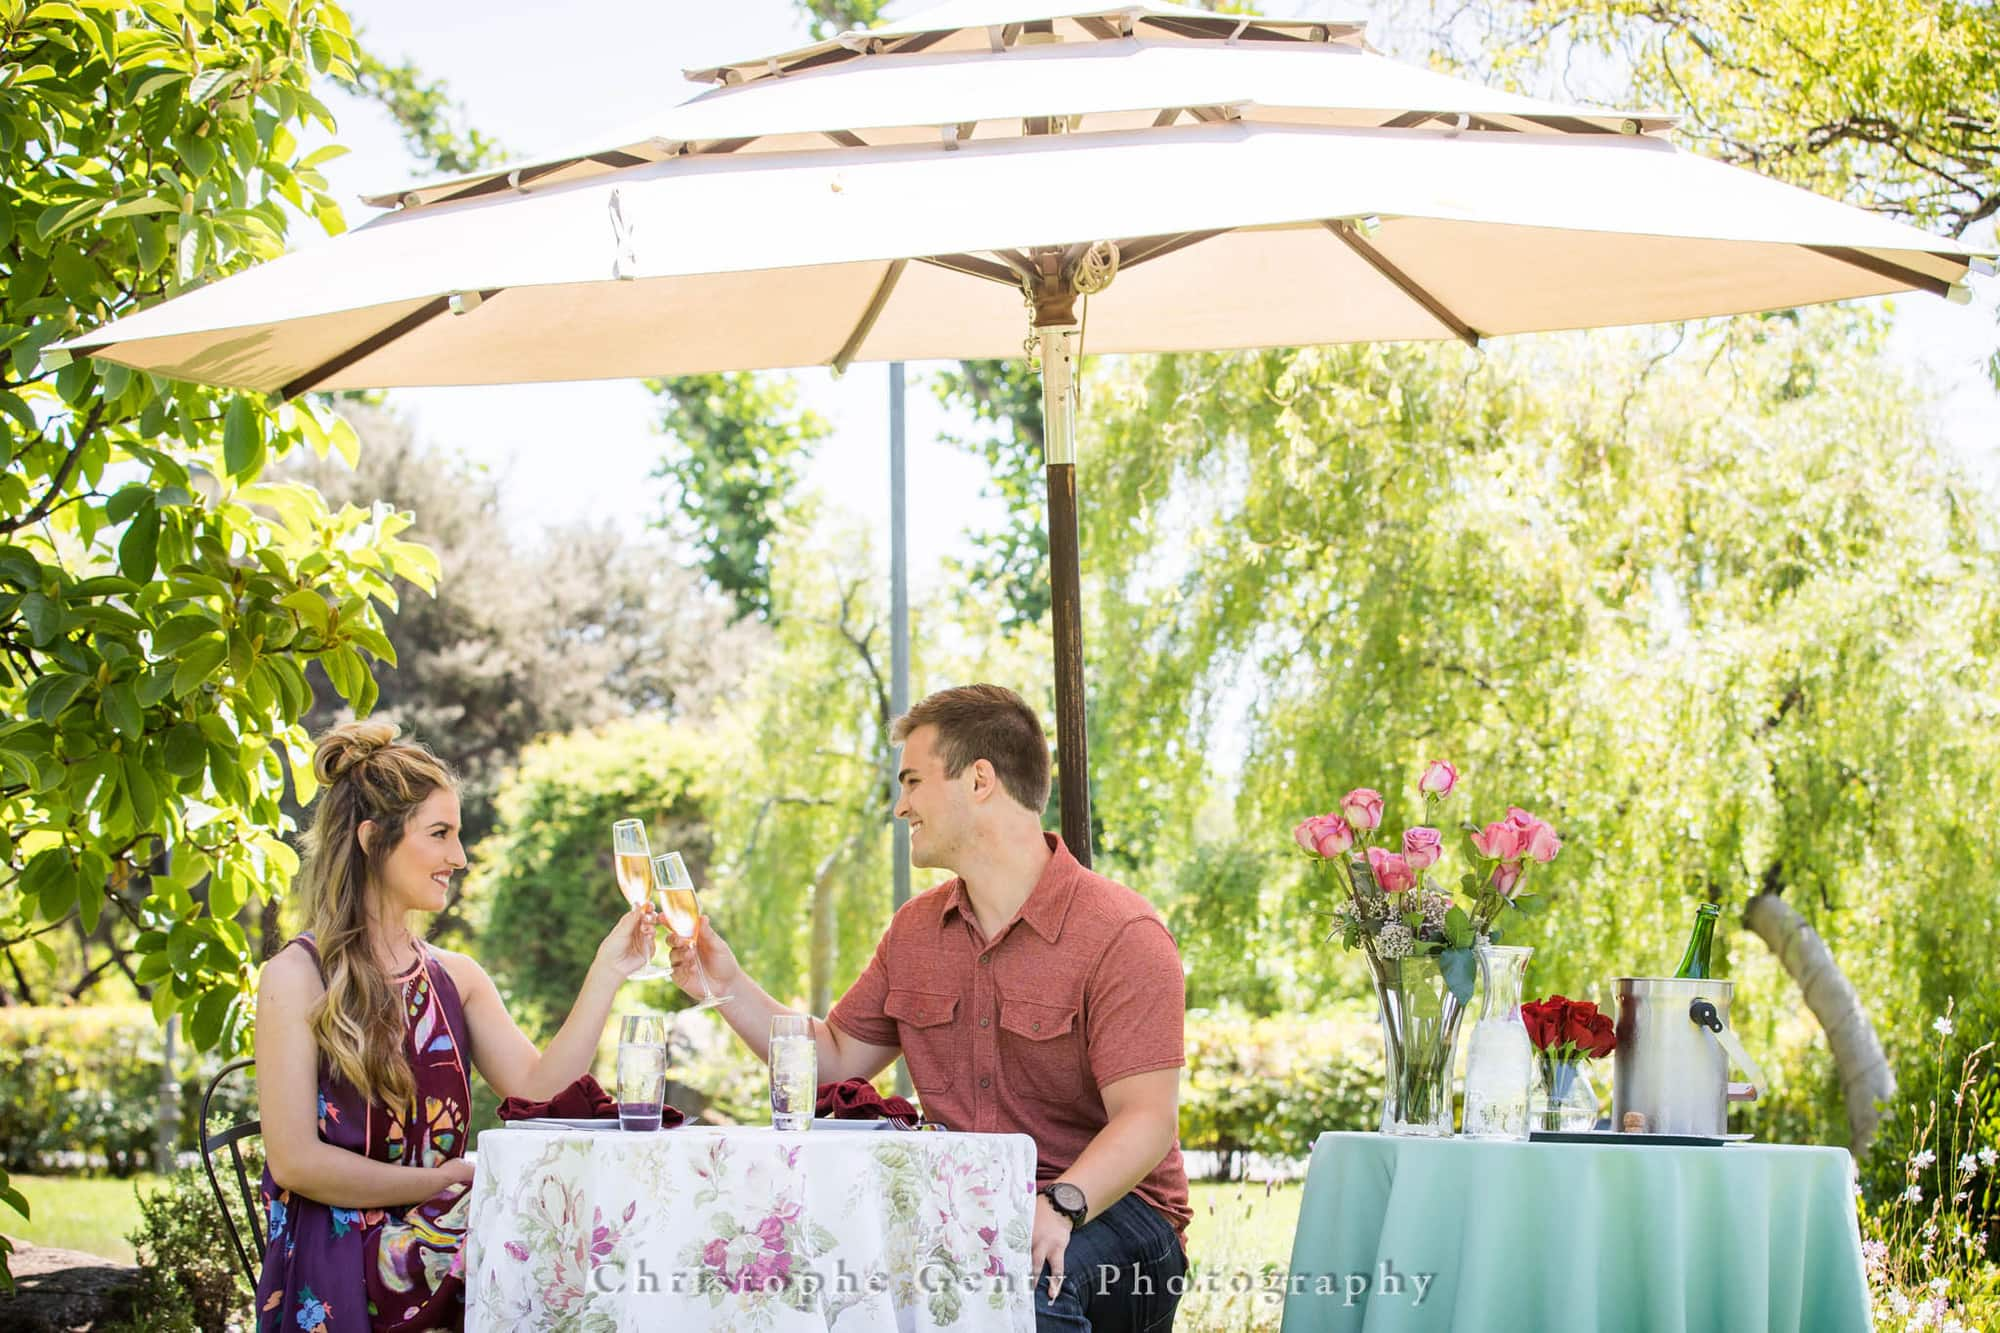 Marriage Proposal Photography at Peju Province Winery in Rutherford, California